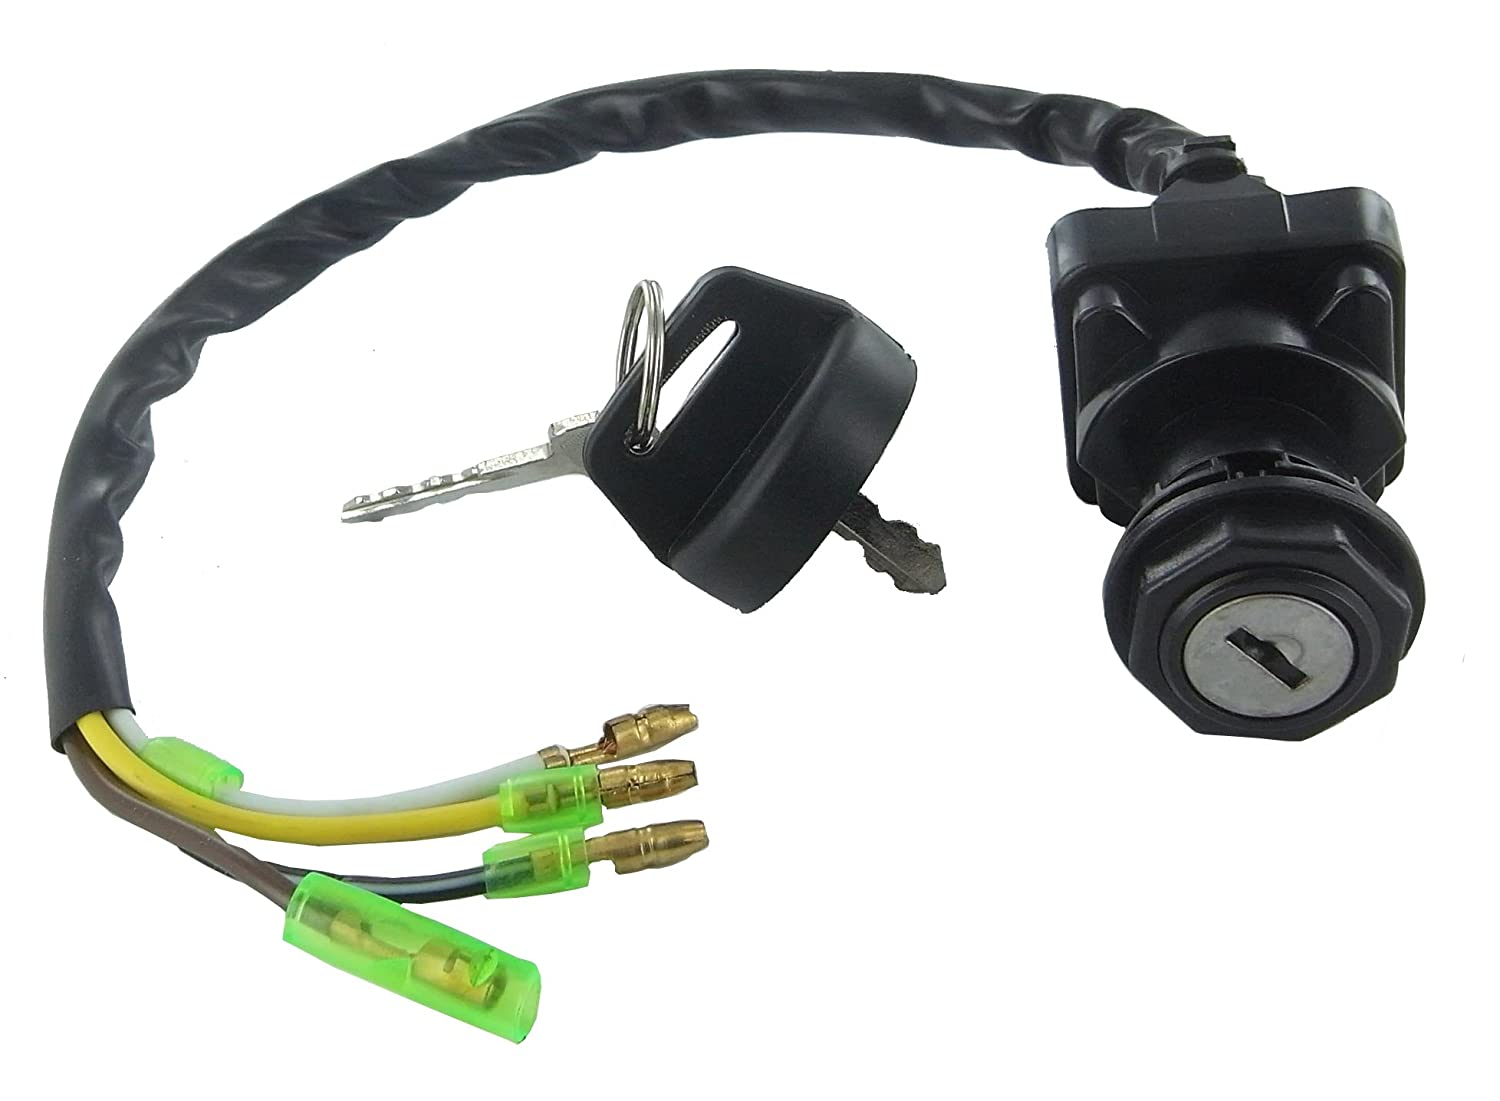 Amazon Ignition Key Switch Kawasaki KLF220 Bayou 220 1988 – Kawasaki Bayou 220 Wiring Coil